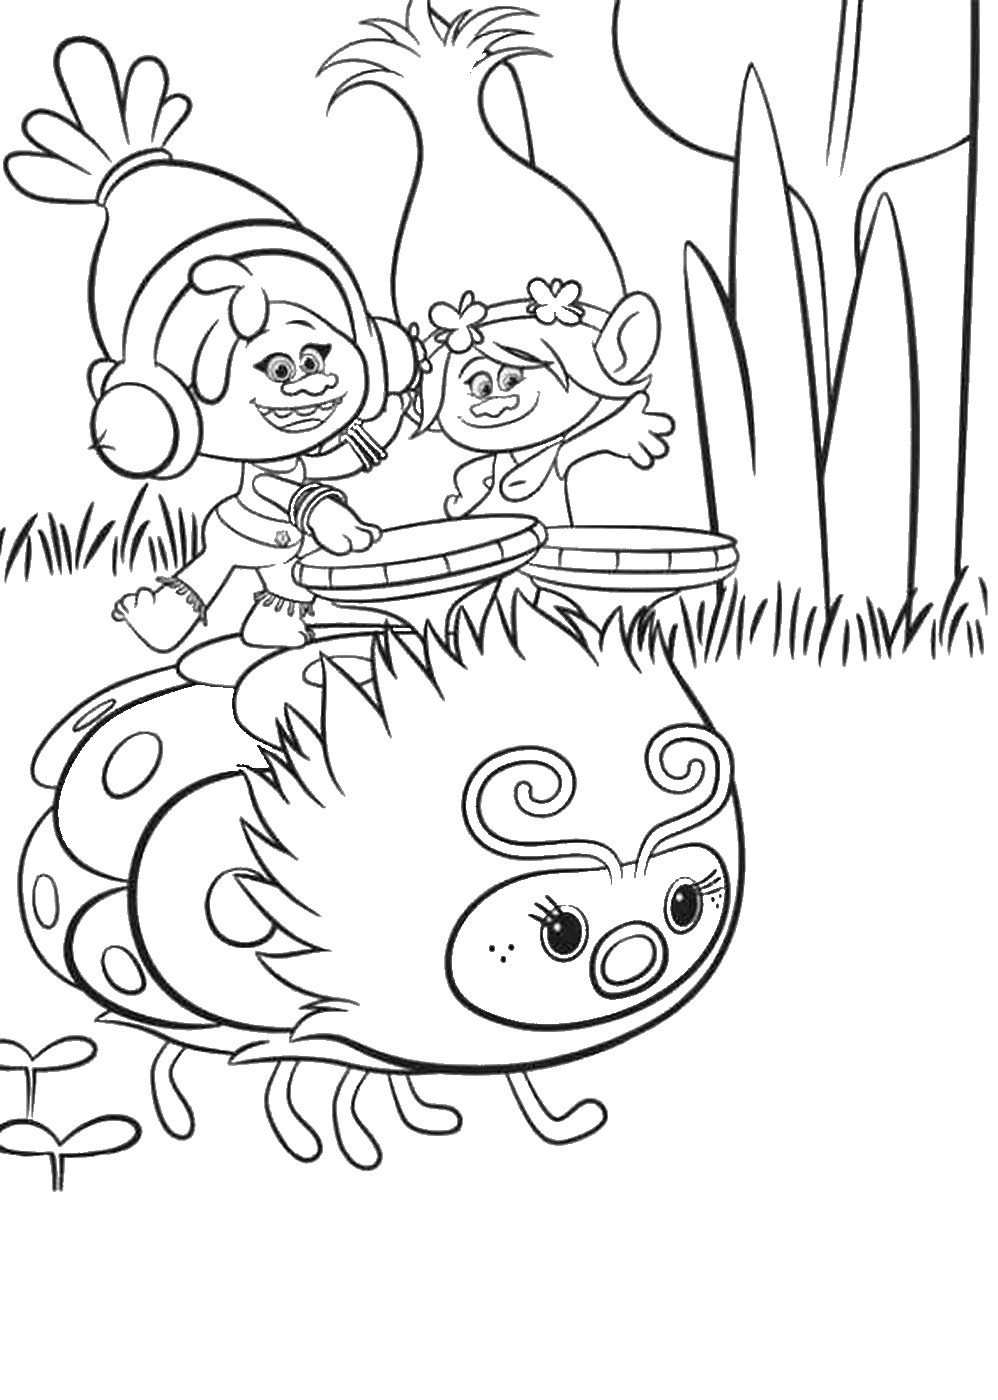 coloring sheet trolls trolls holiday movie coloring pages trolls coloring sheet 1 1